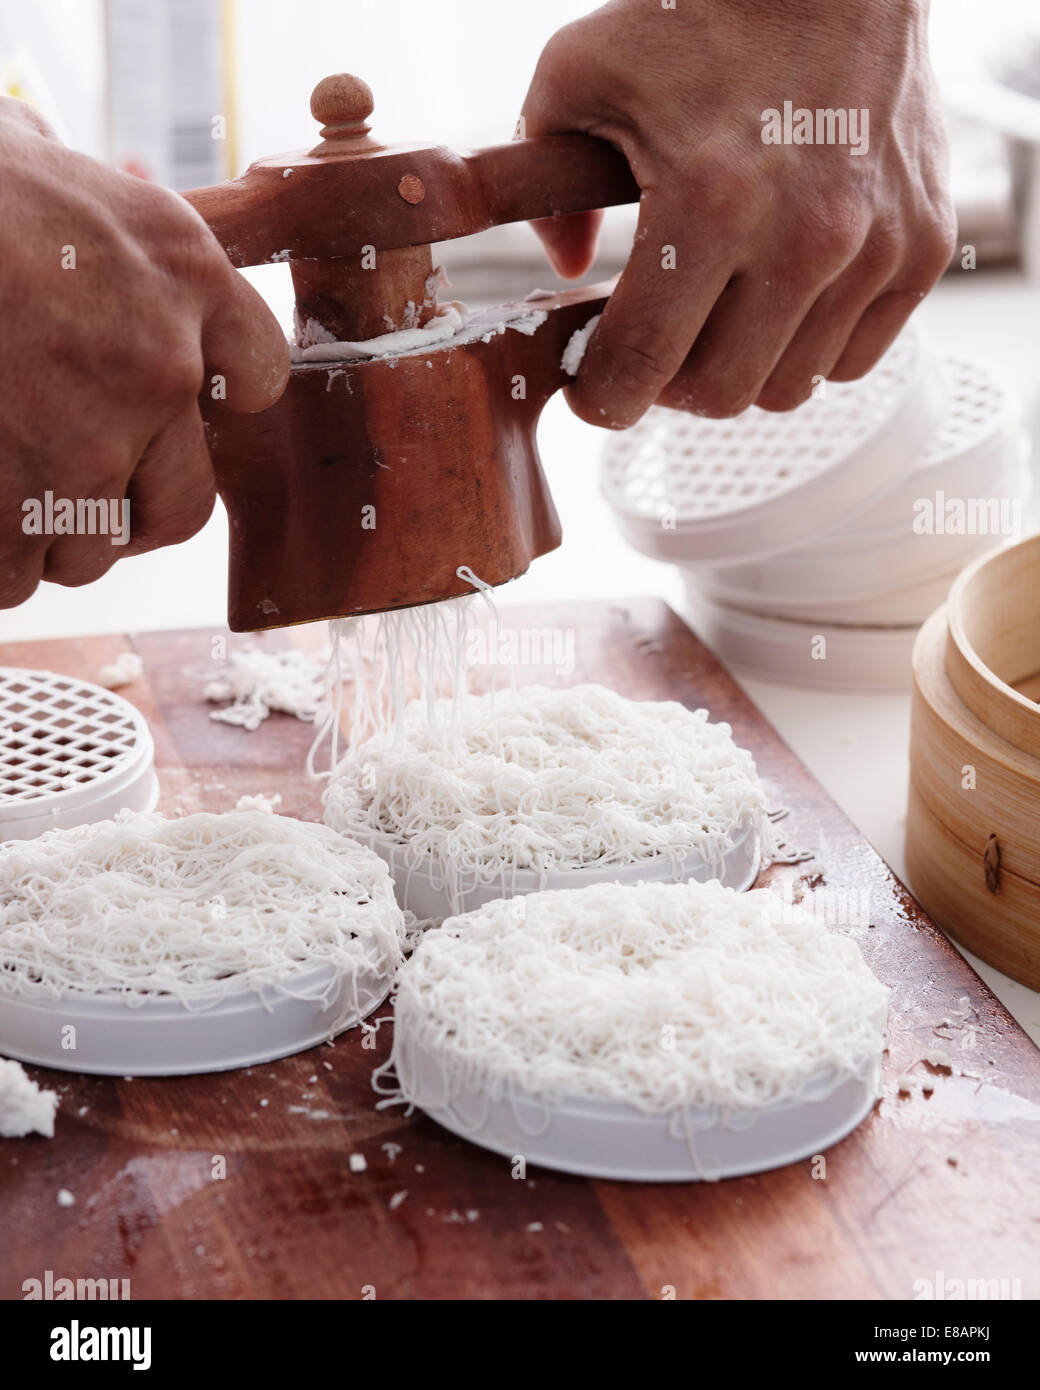 How to Make Curry Step 05 - Stock Image